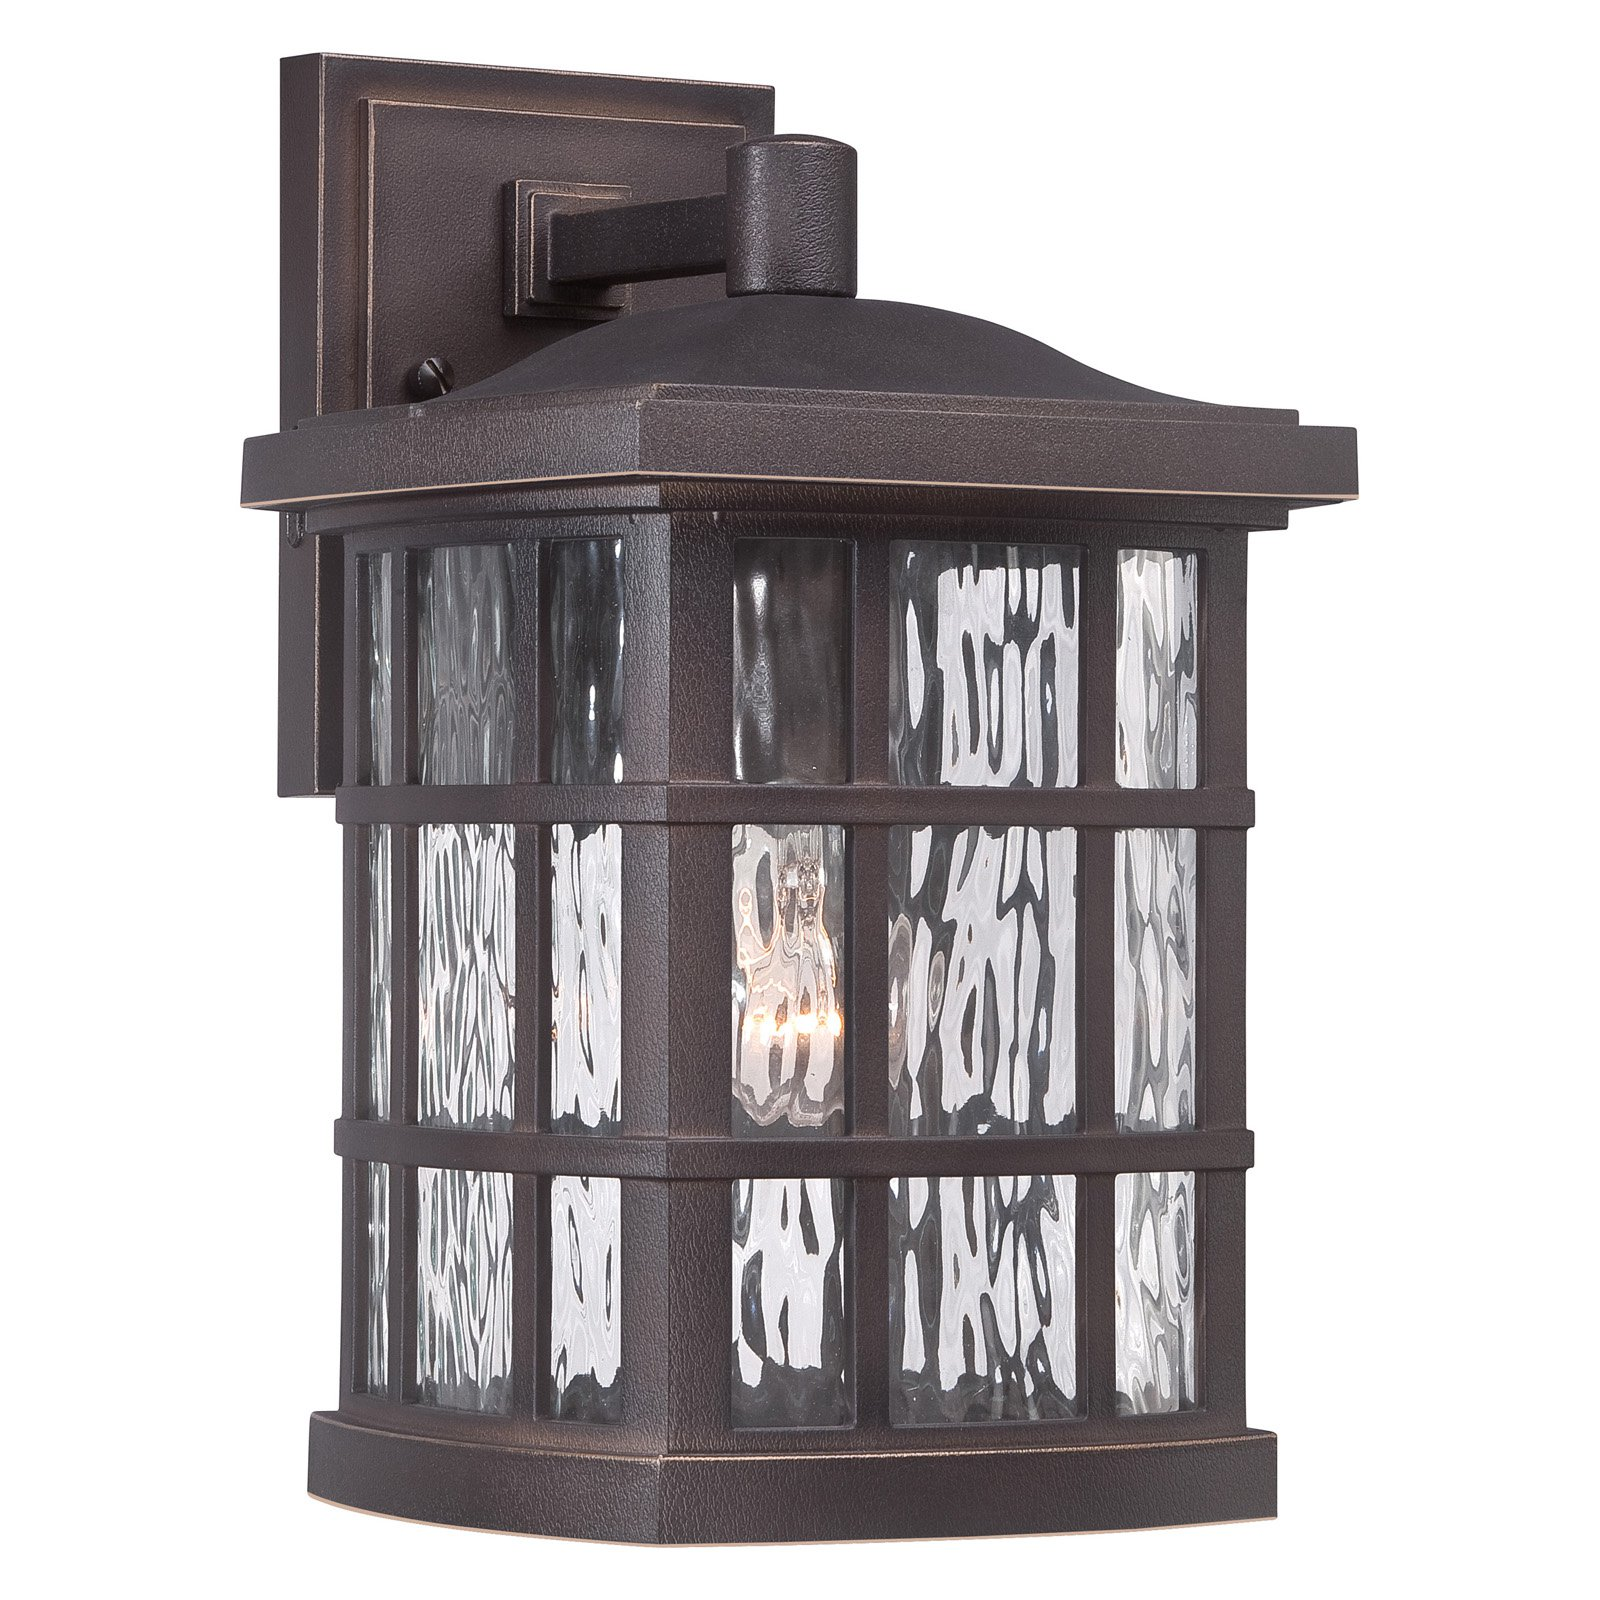 Quoizel Stonington SNN8408 Outdoor Wall Lantern